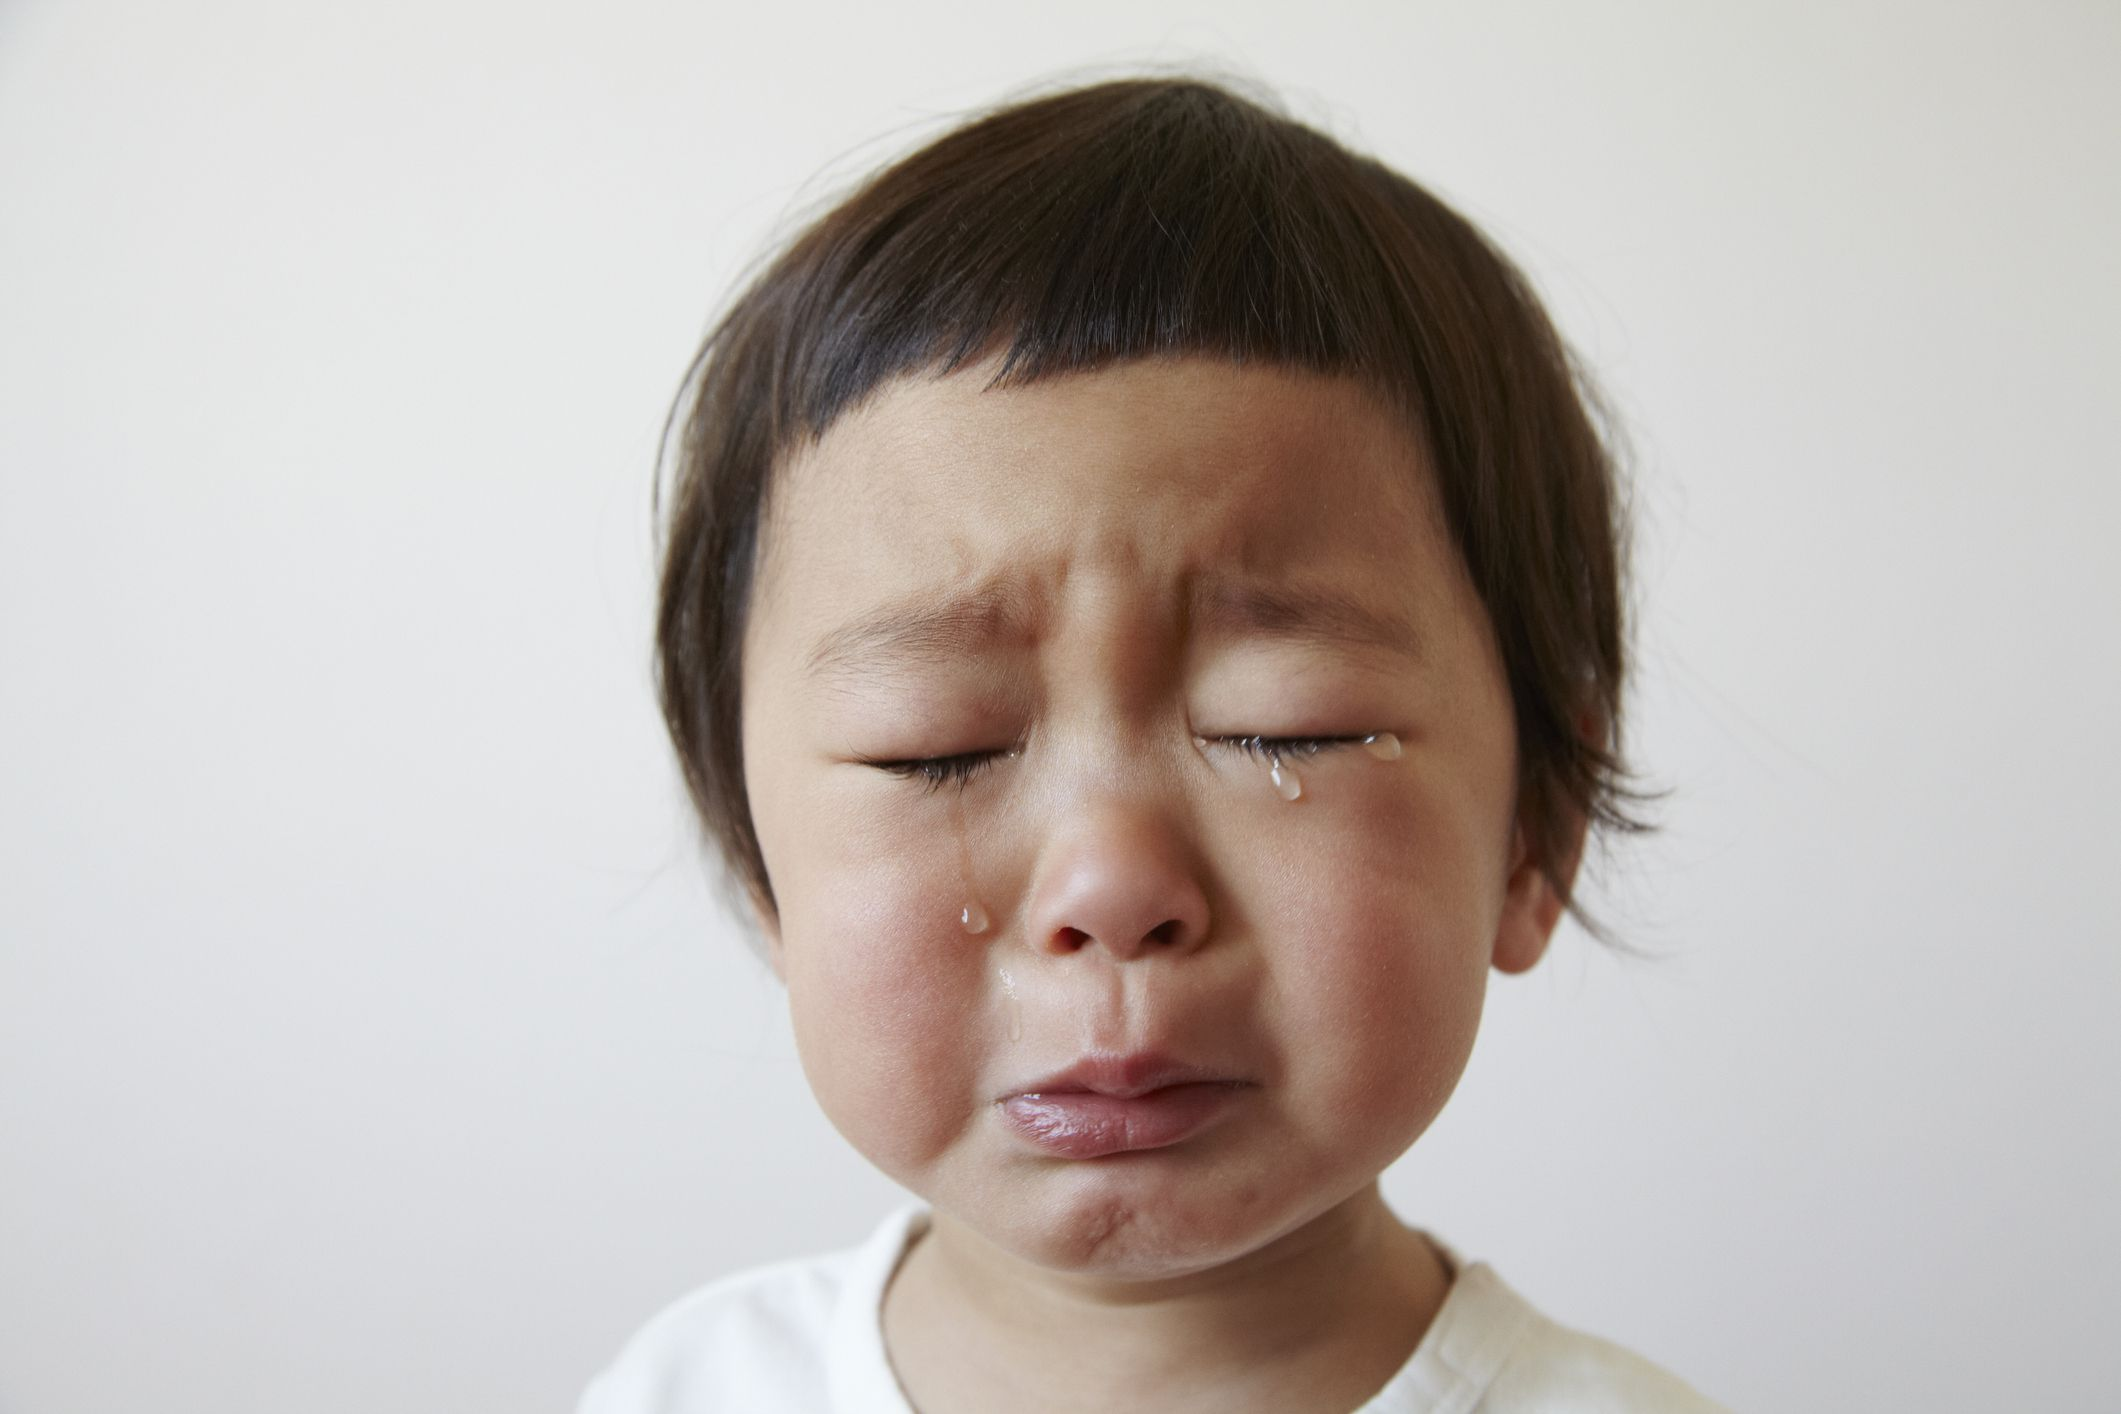 7 Reasons Your Child May Be Crying